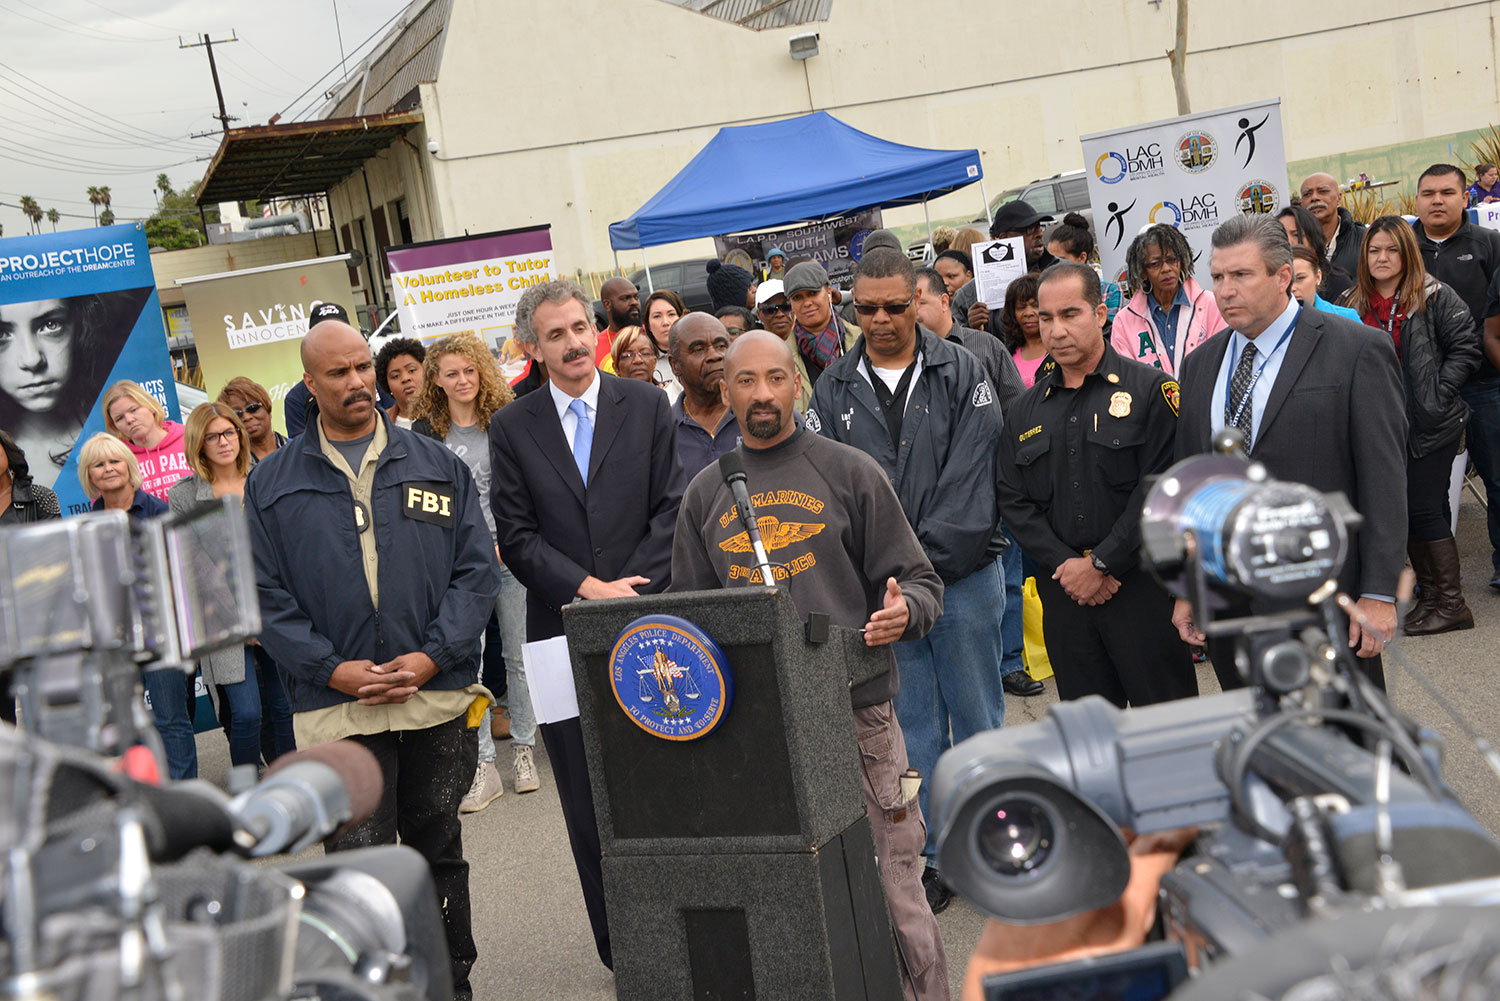 LAPD Detective Cedric Washington Discusses the Community Impact Initiative